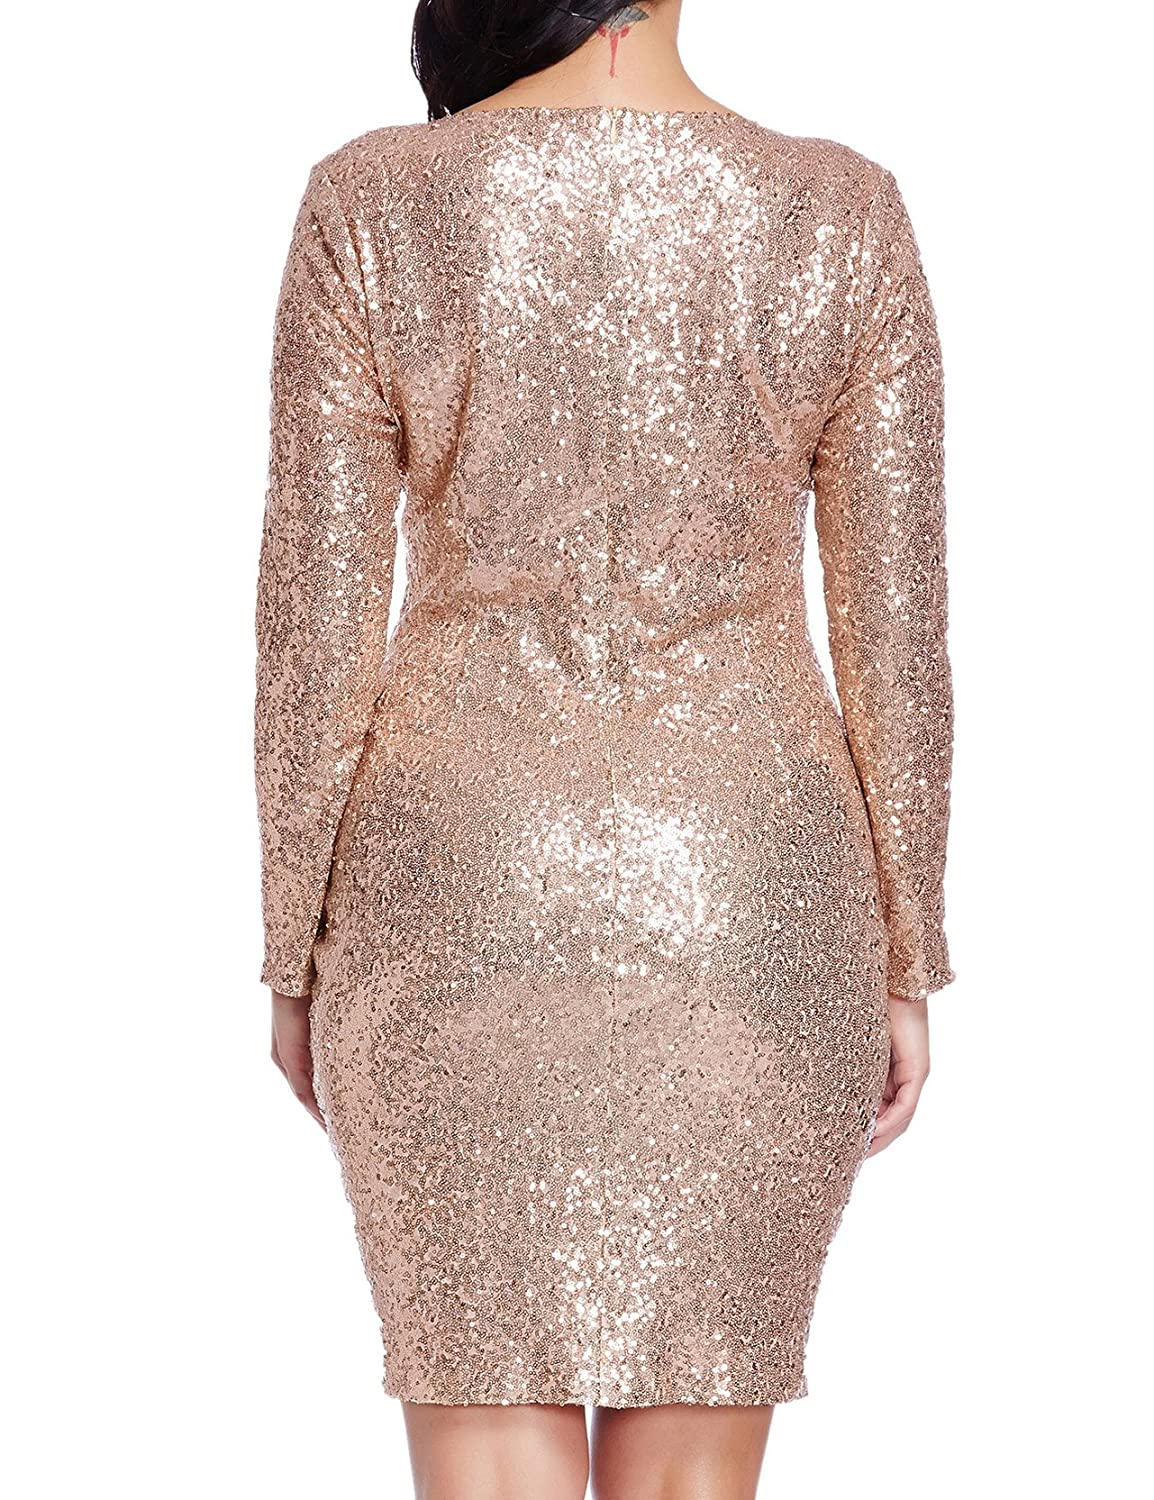 4ce4606f Grapent Women's Plus Size Sequin Cocktail Sheath Short Dress Bodycon Long  Sleeve Rose Gold 22W: Amazon.ca: Luggage & Bags